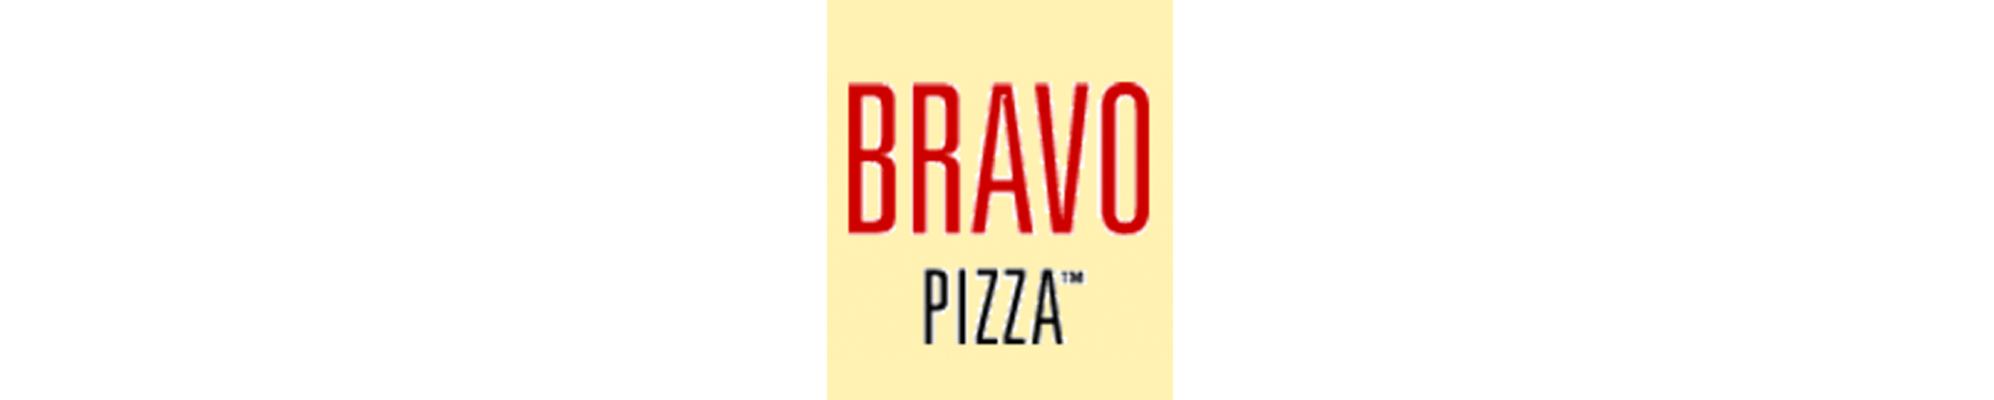 Welcome to Bravo piz